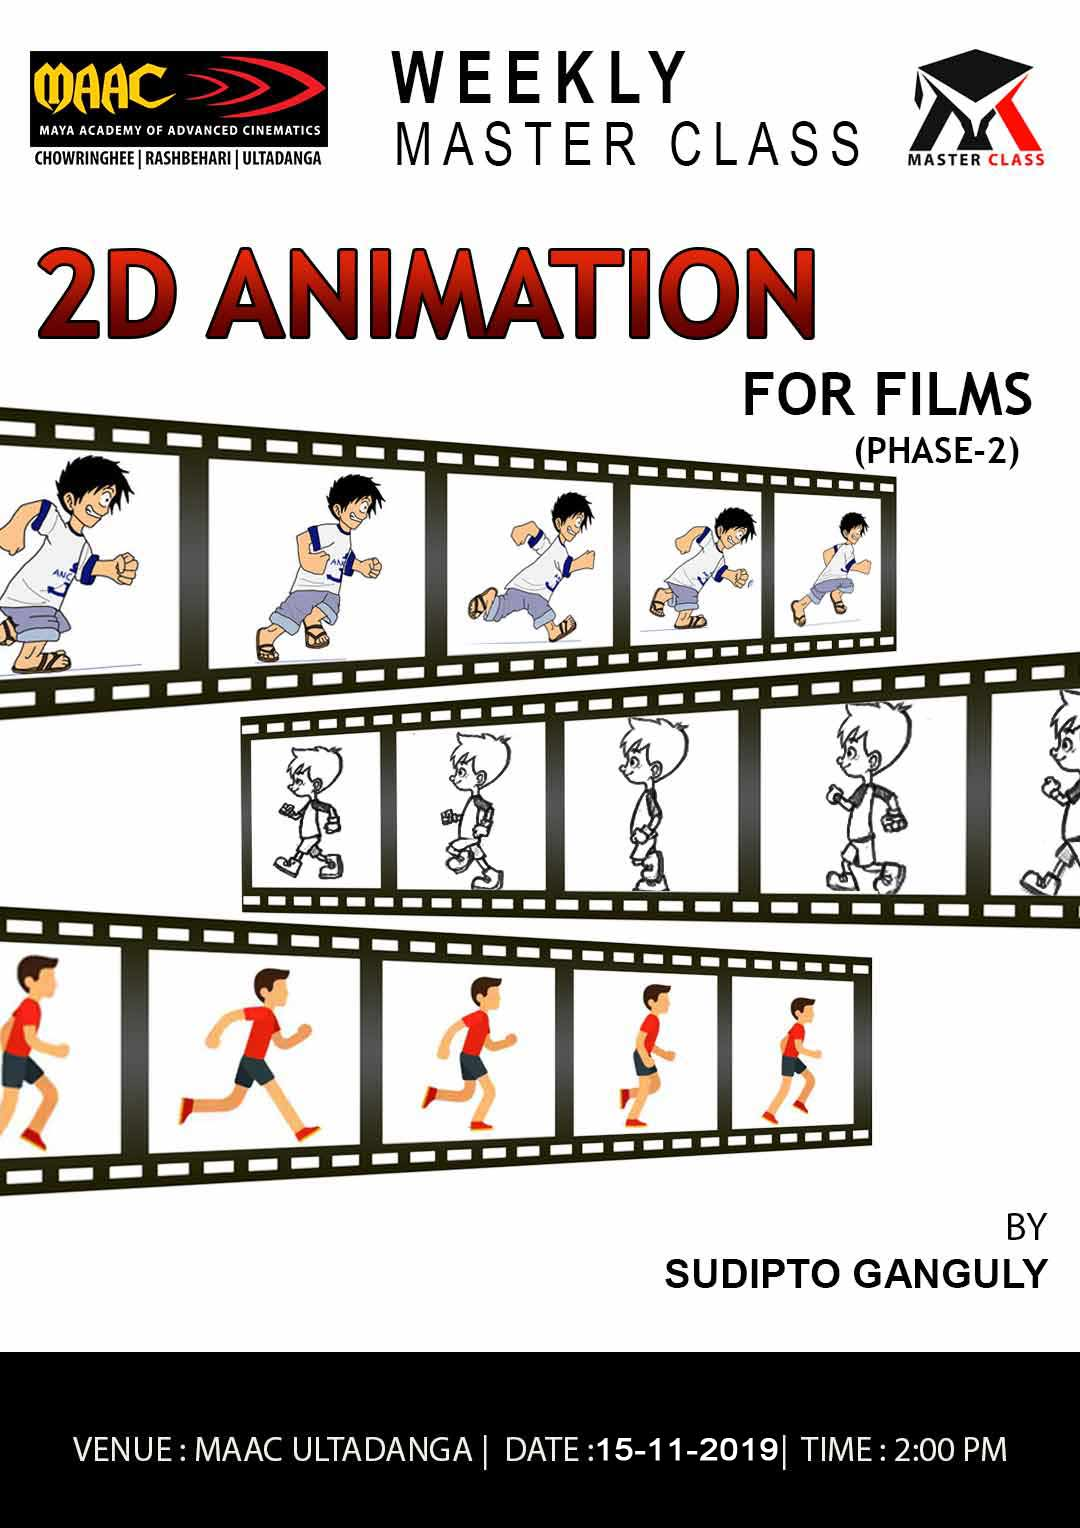 Weekly Master Class on 2D Animation